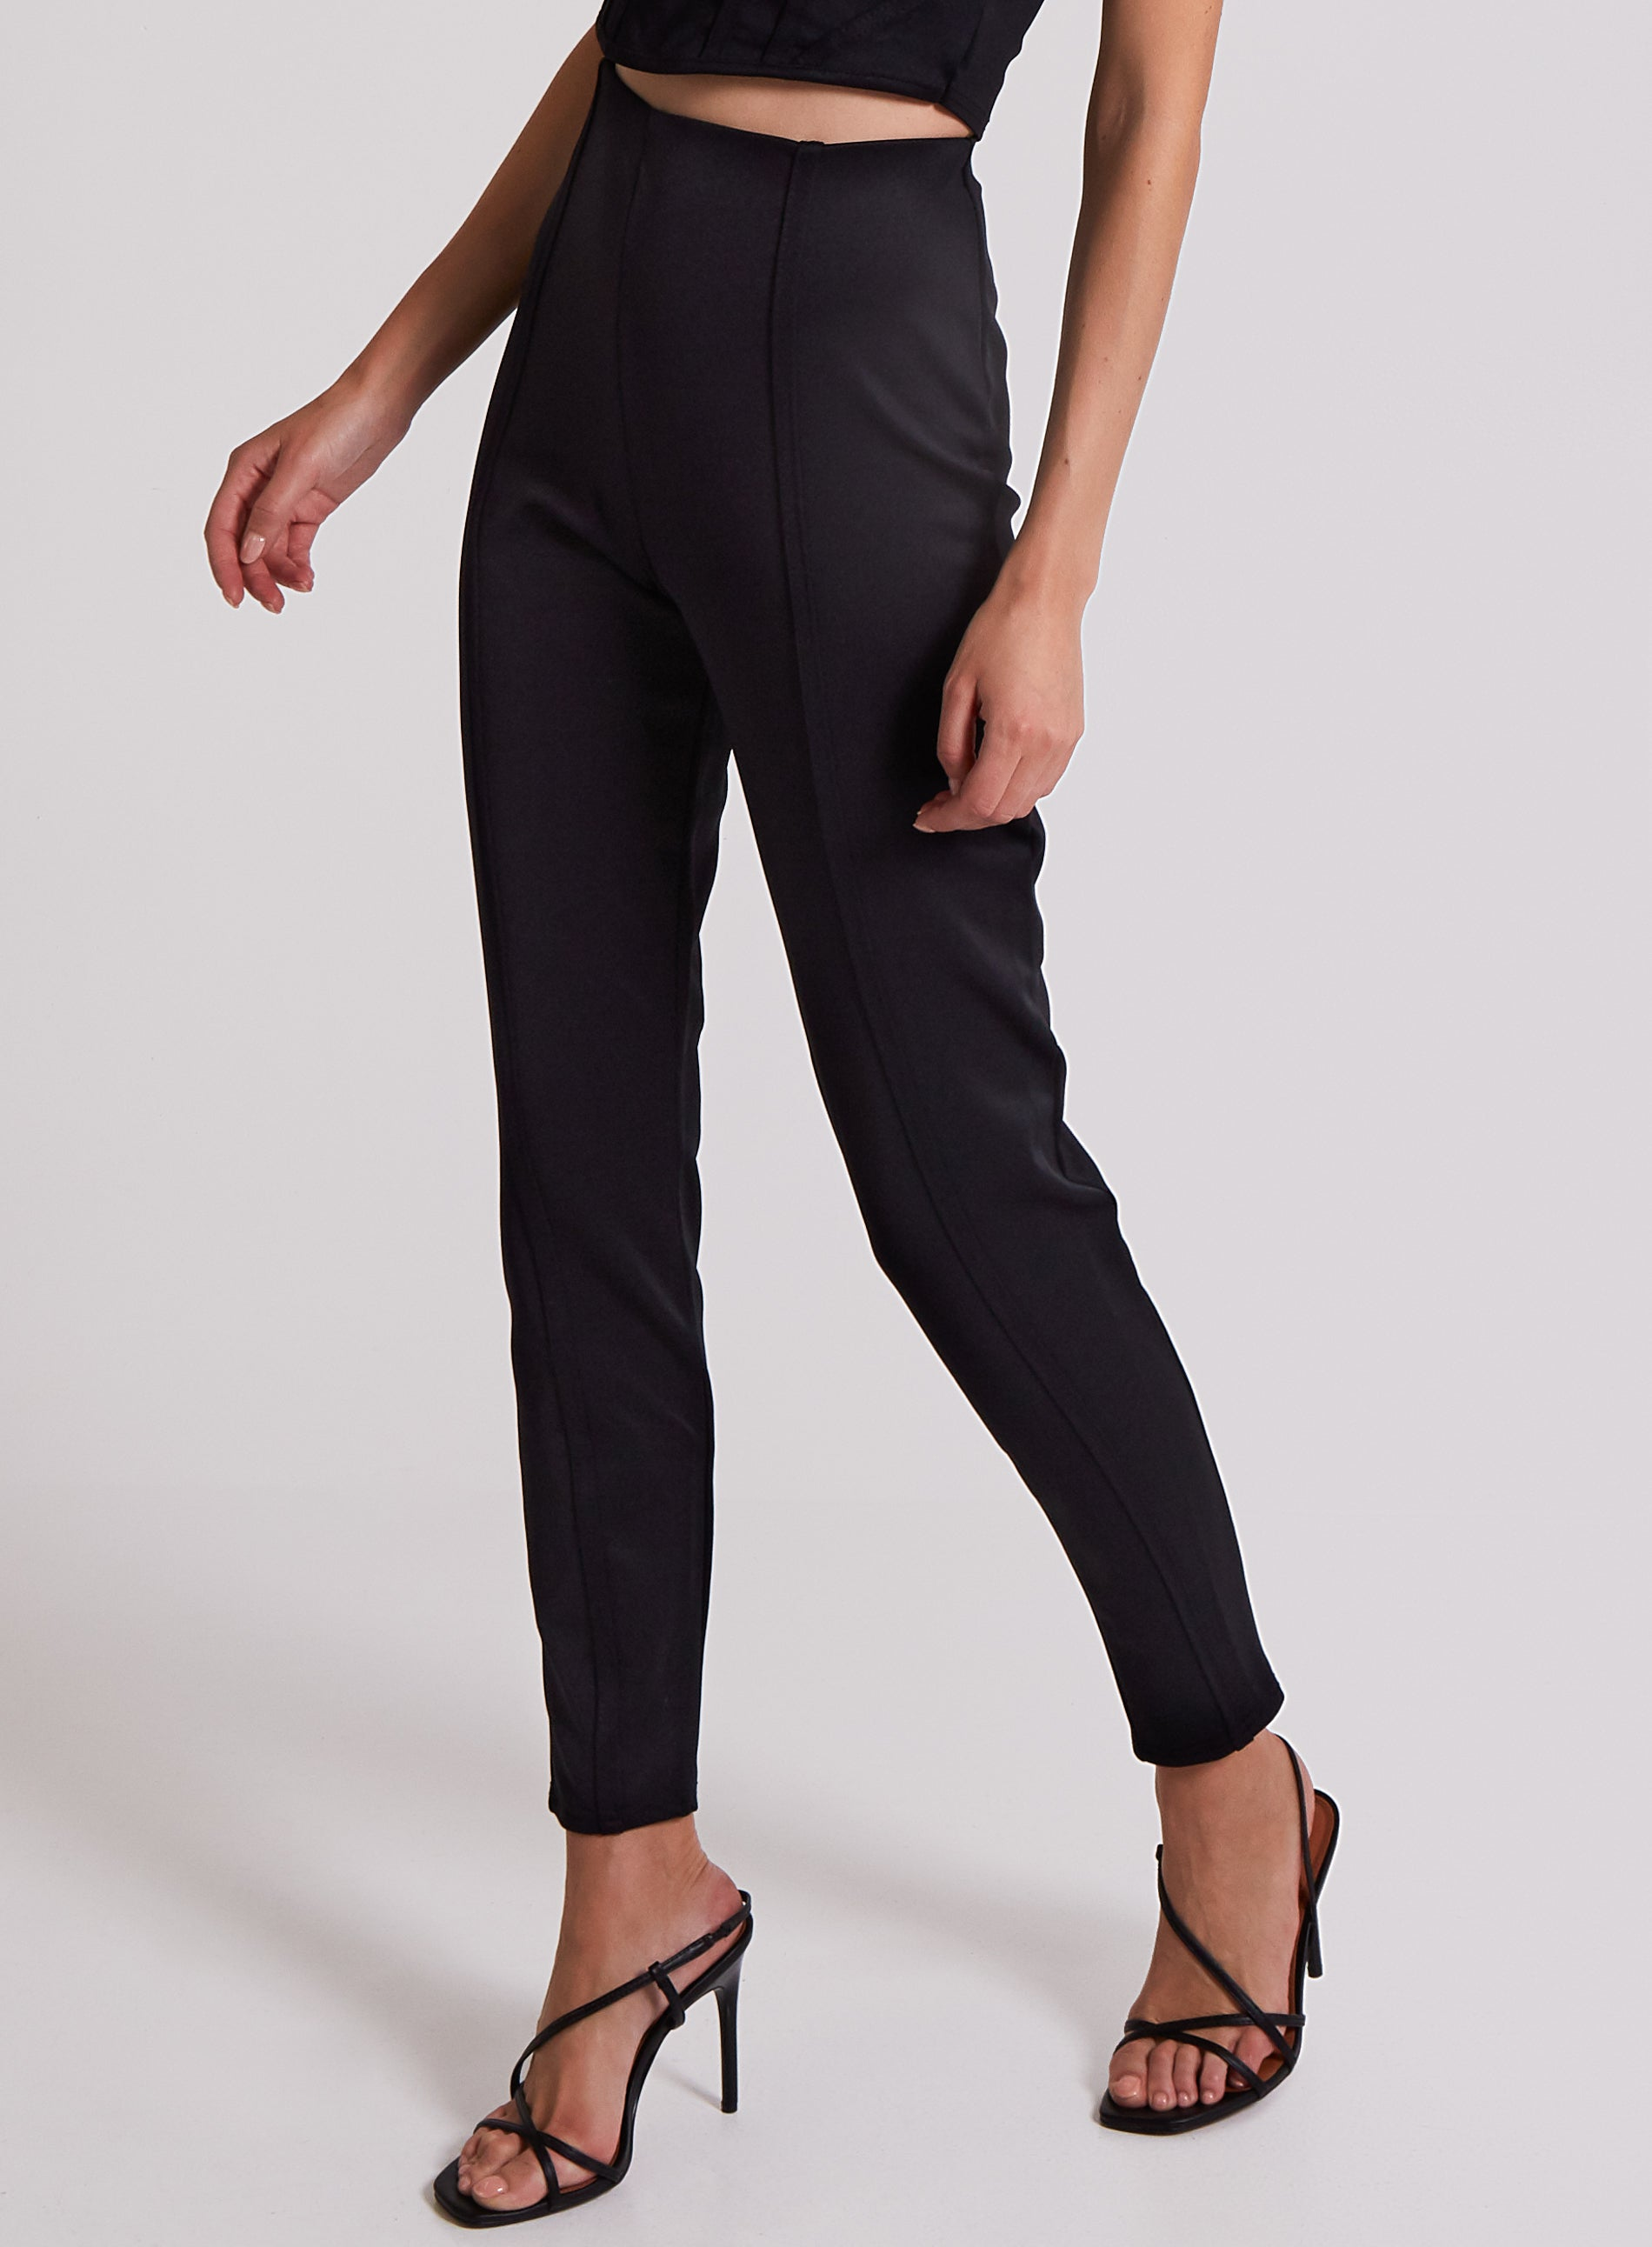 DEVOTE - Piping Detail High Waisted Bottoms